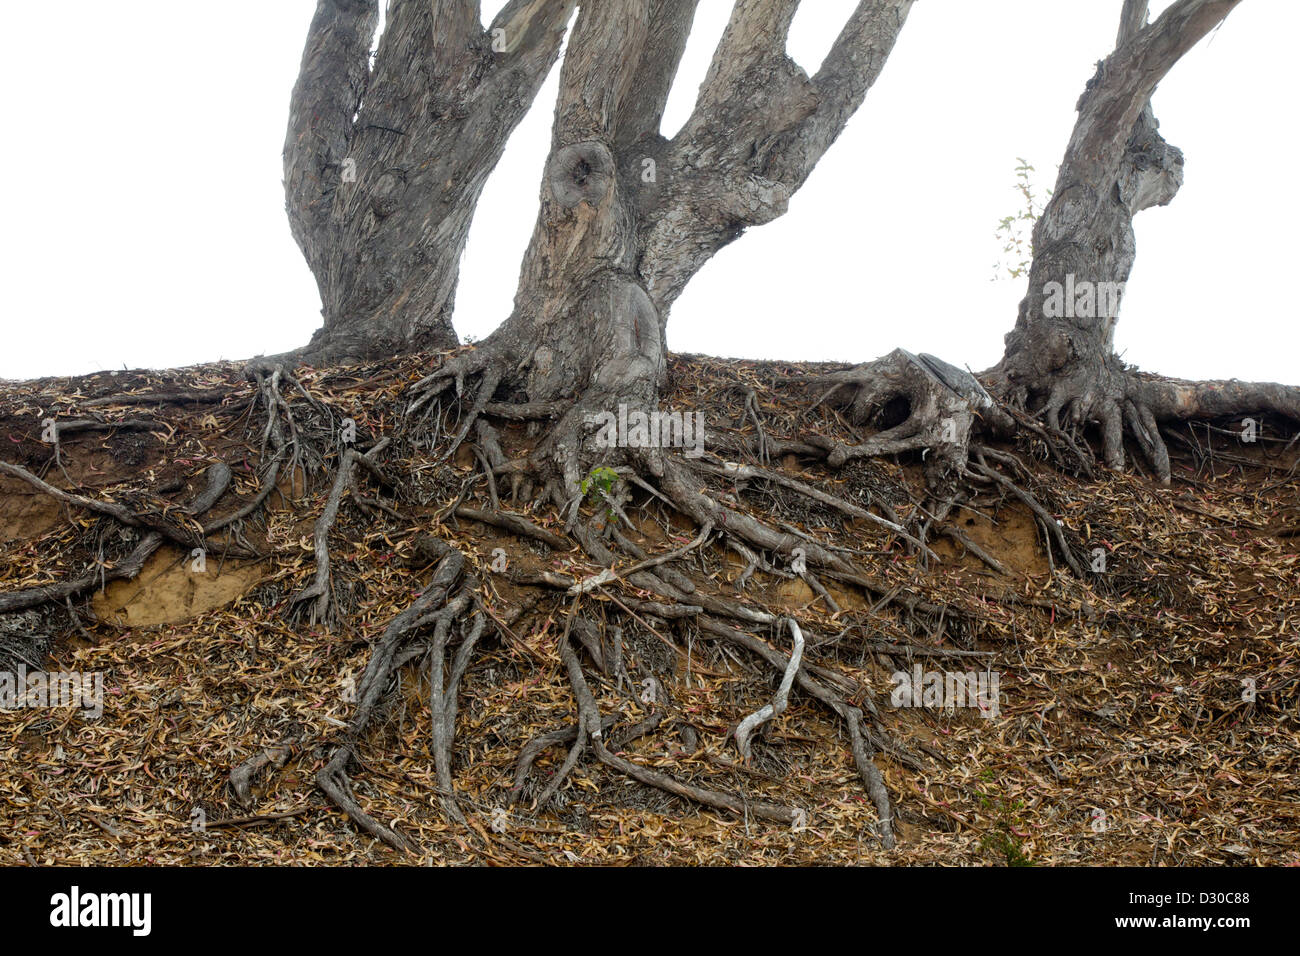 Tangle of Tree Roots - Stock Image